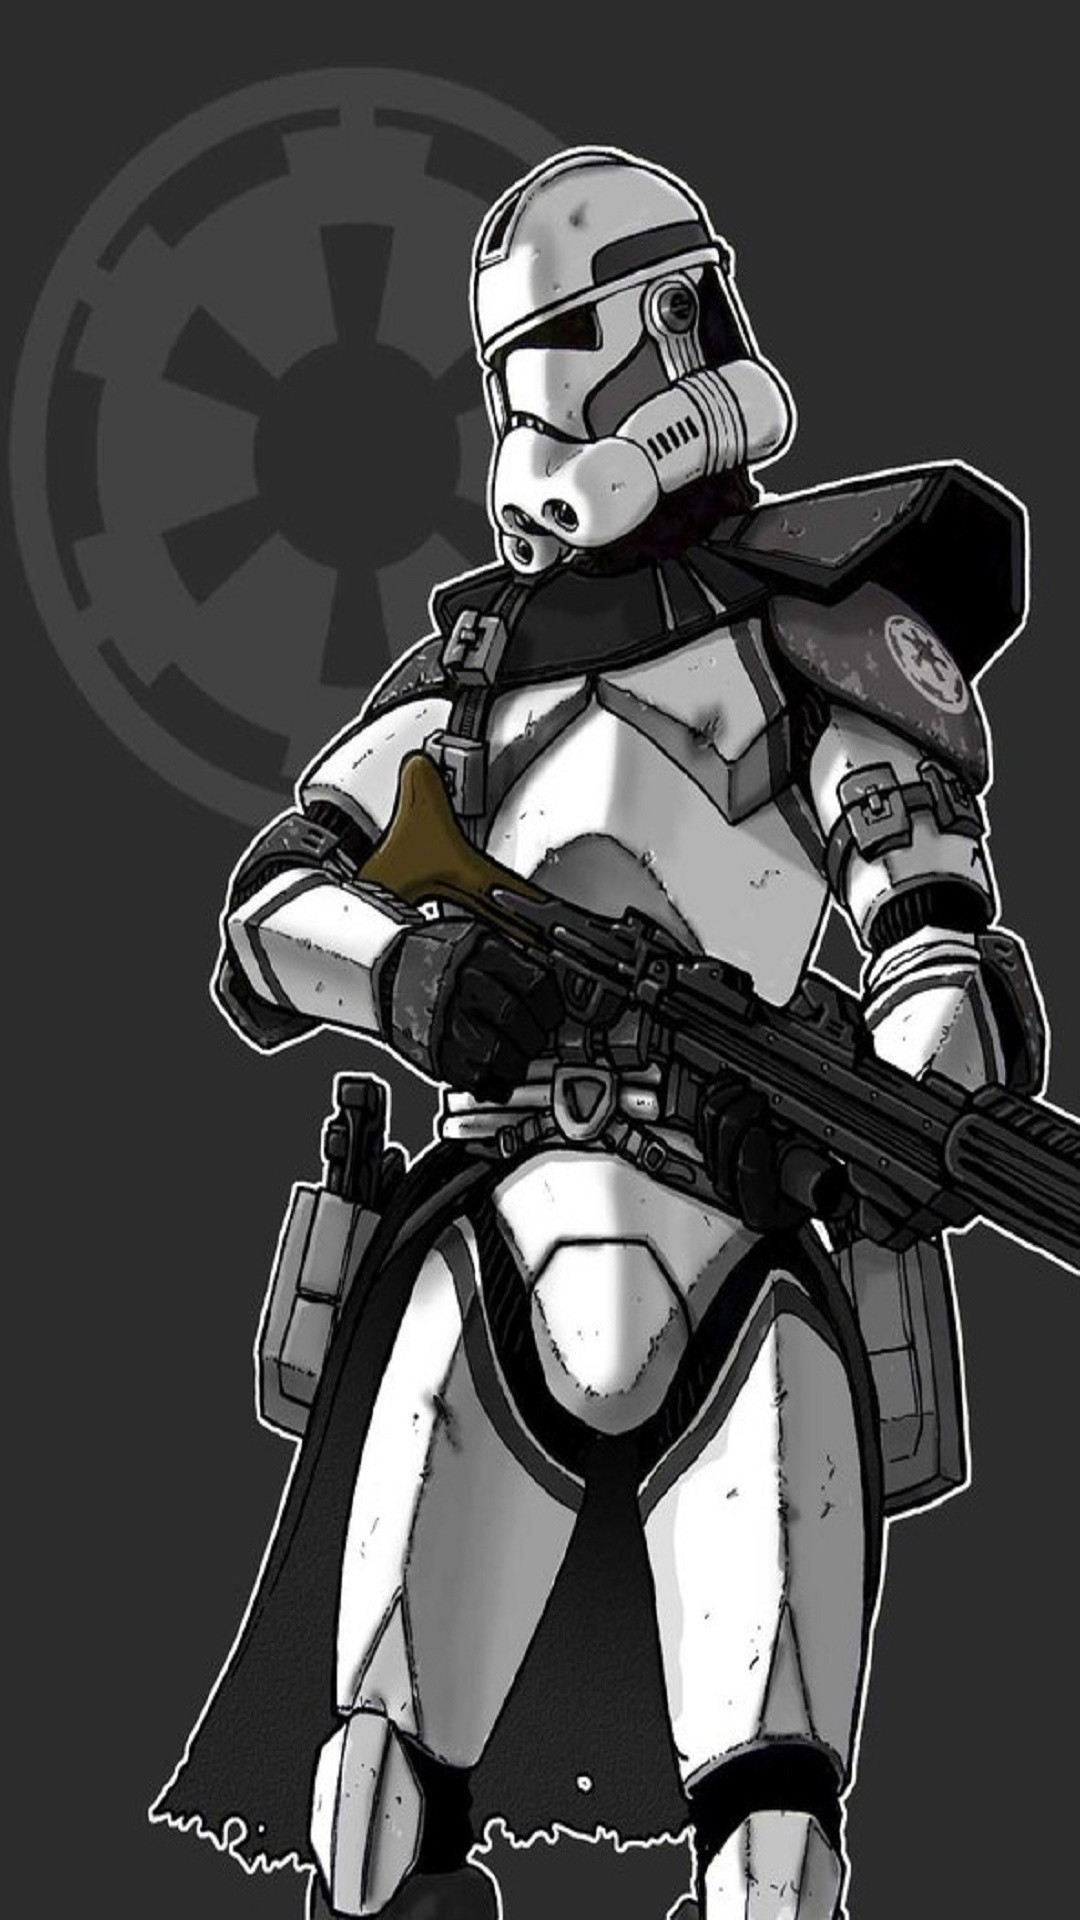 1080x1920 Star Wars Arc Trooper/ or Heavy Clone trooper